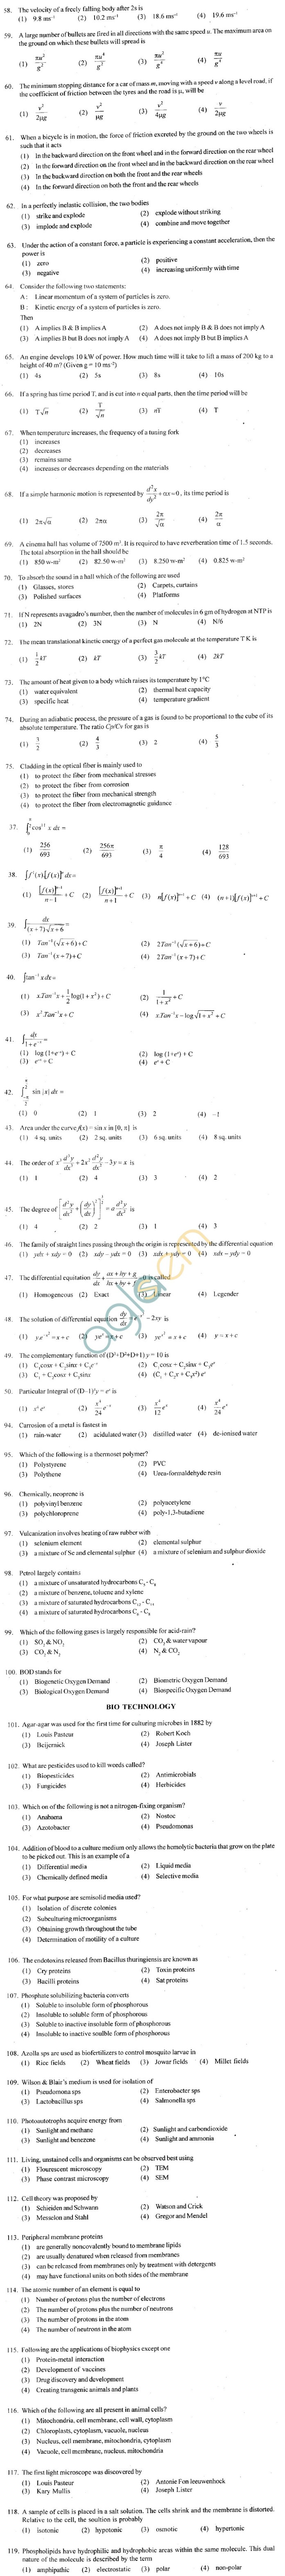 ECET 2012 Question Paper with Answers - Biotechnology